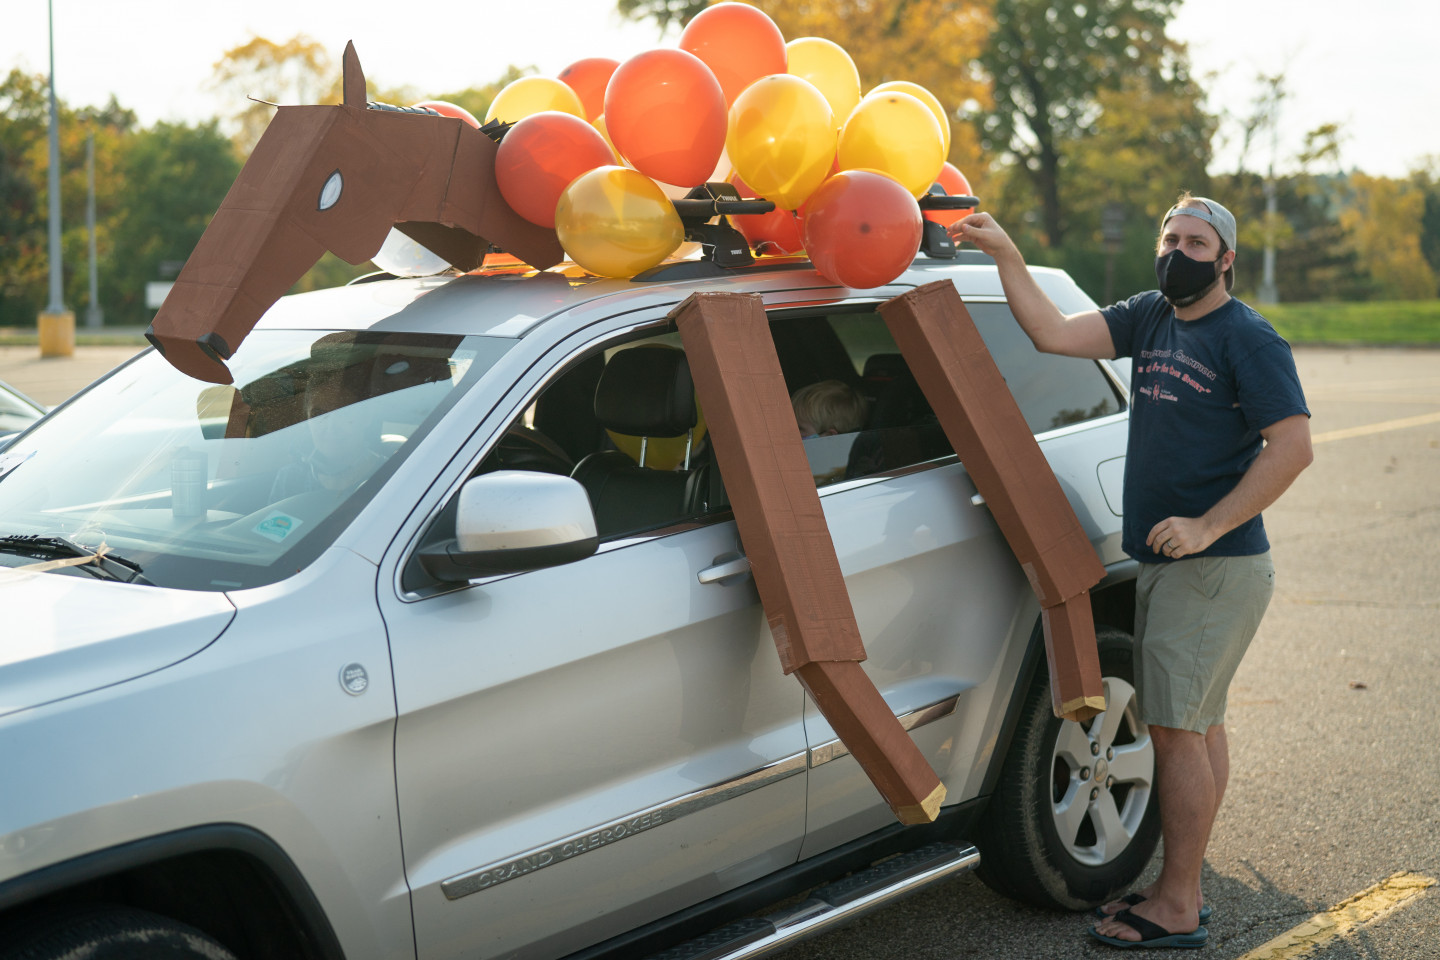 A car is decorated with a large Bronco and balloons.